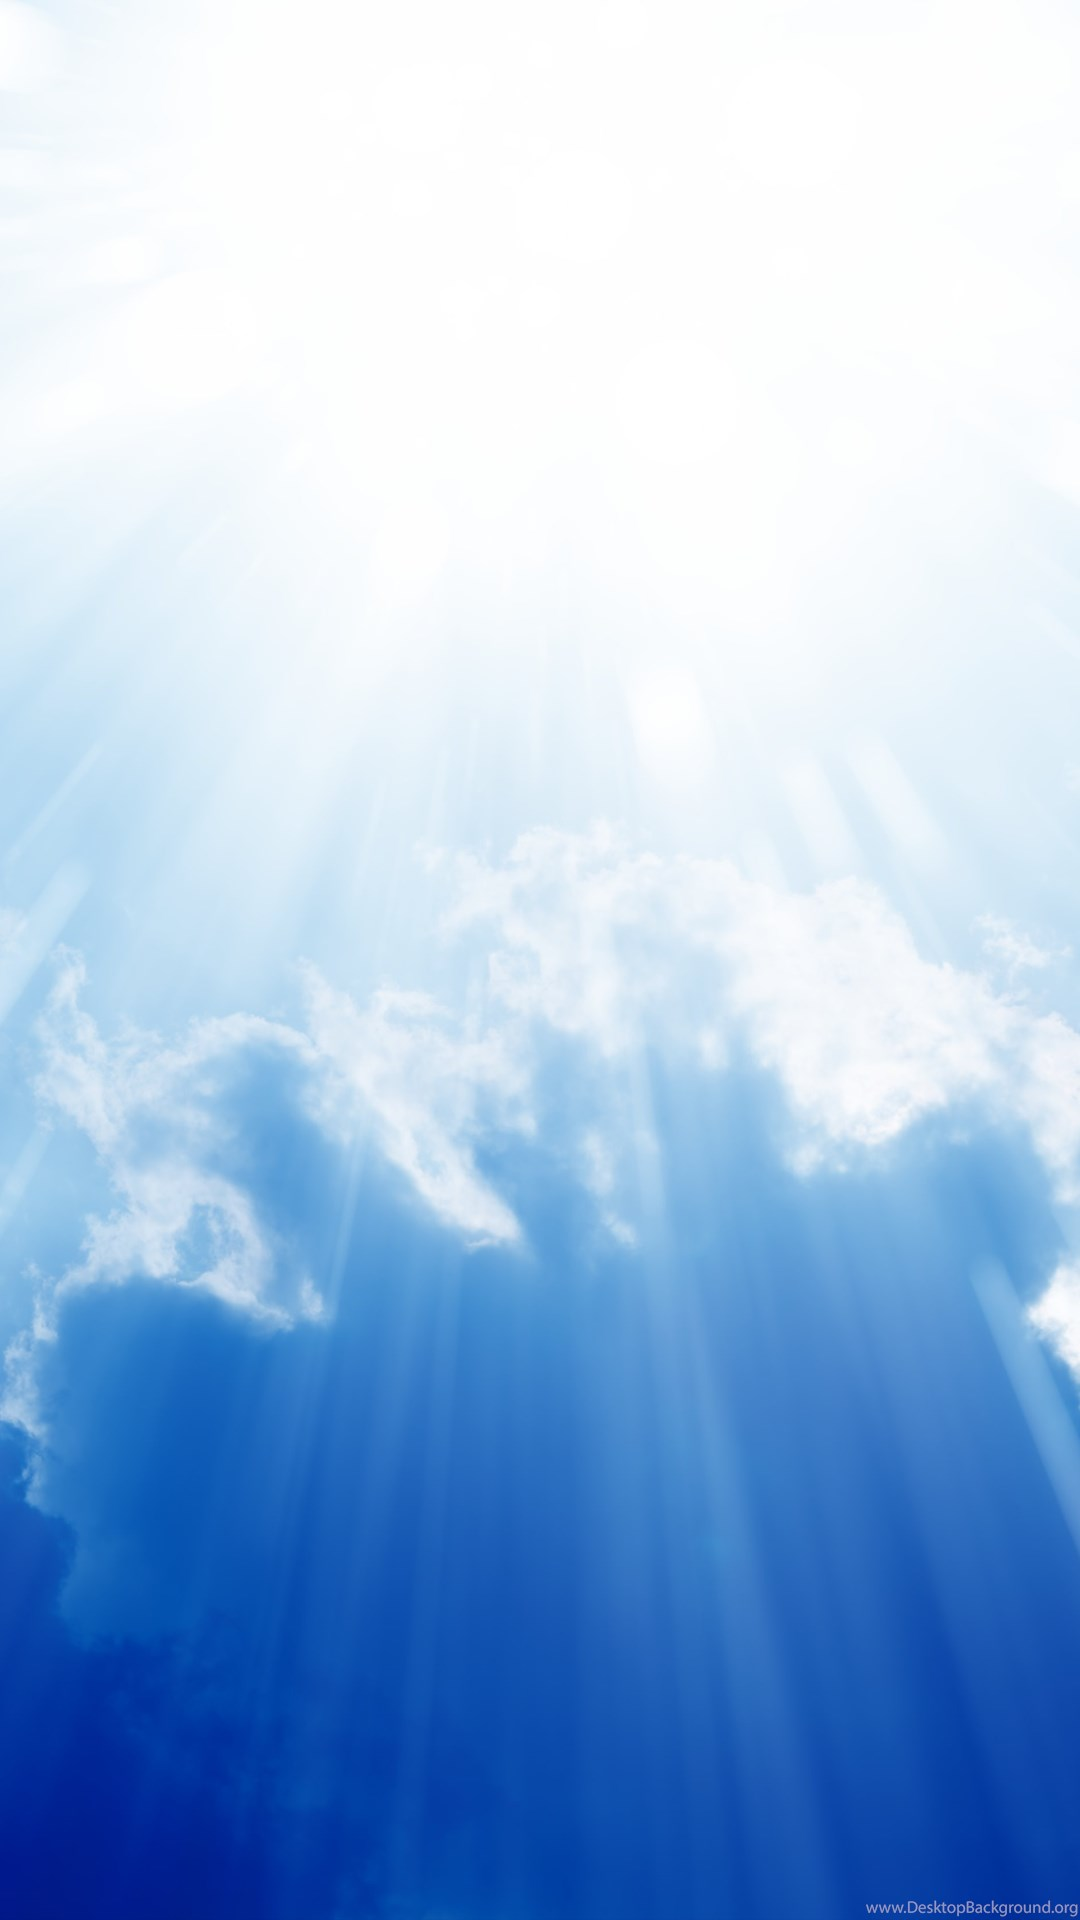 56 Hd Heaven Wallpapers Amp Background Images Desktop